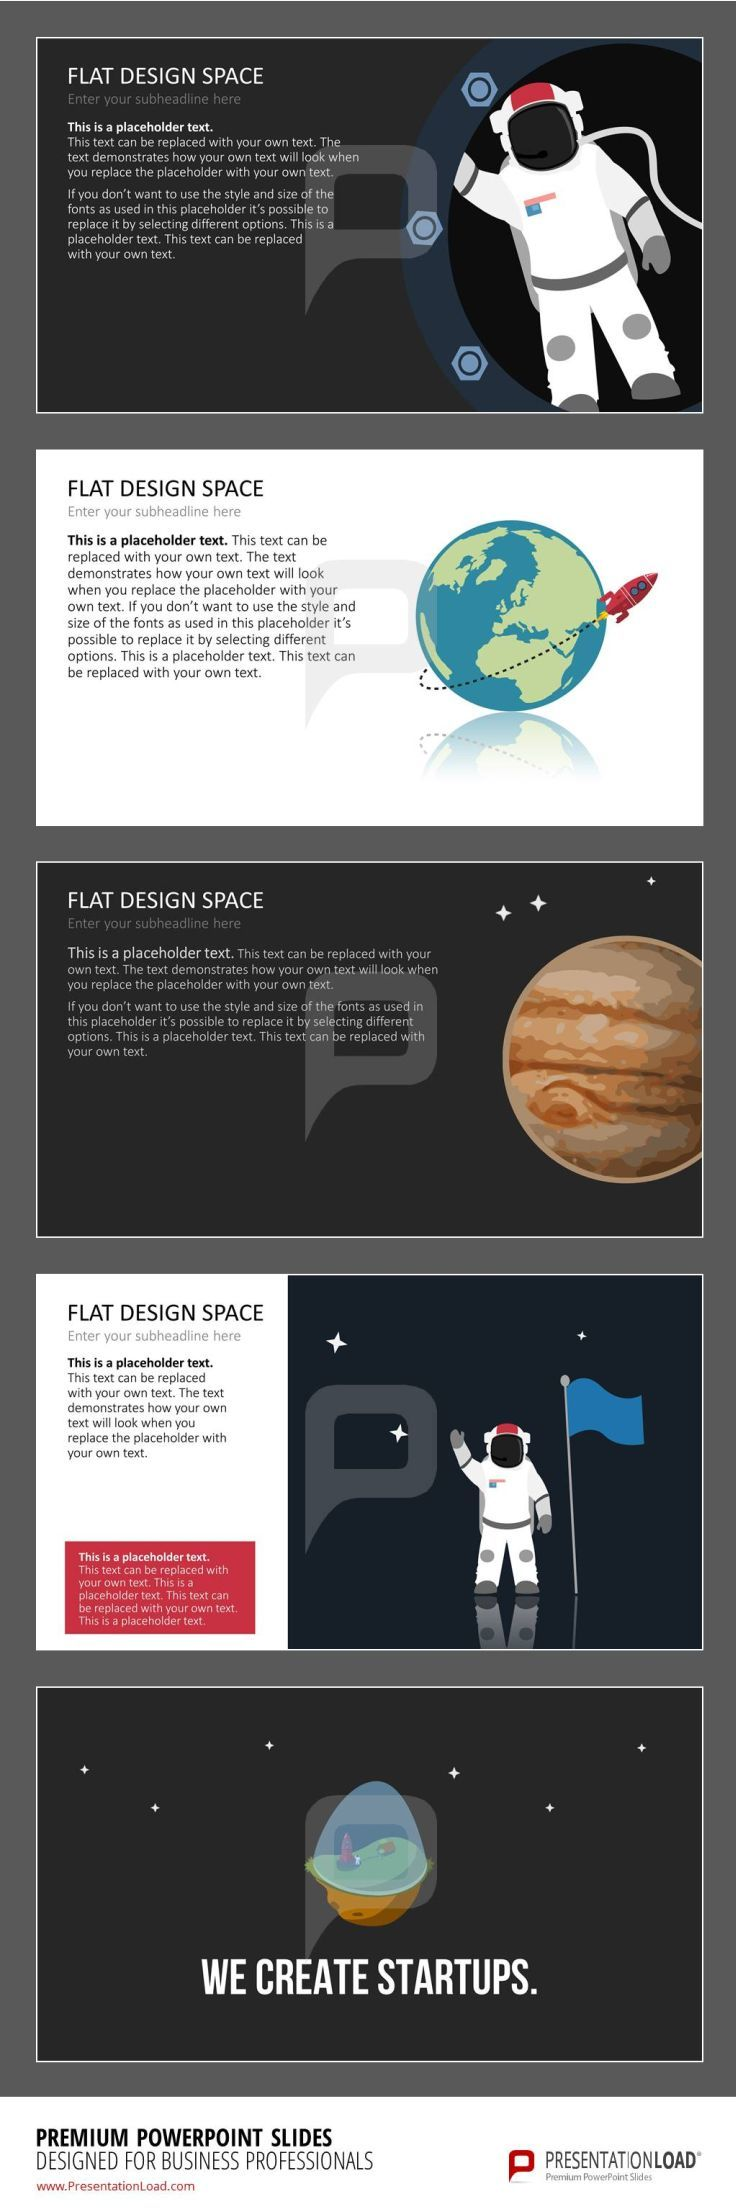 144 best flat design powerpoint templates images on pinterest slides with space graphics in minimalistic flat design and uniquely designed charts alramifo Gallery